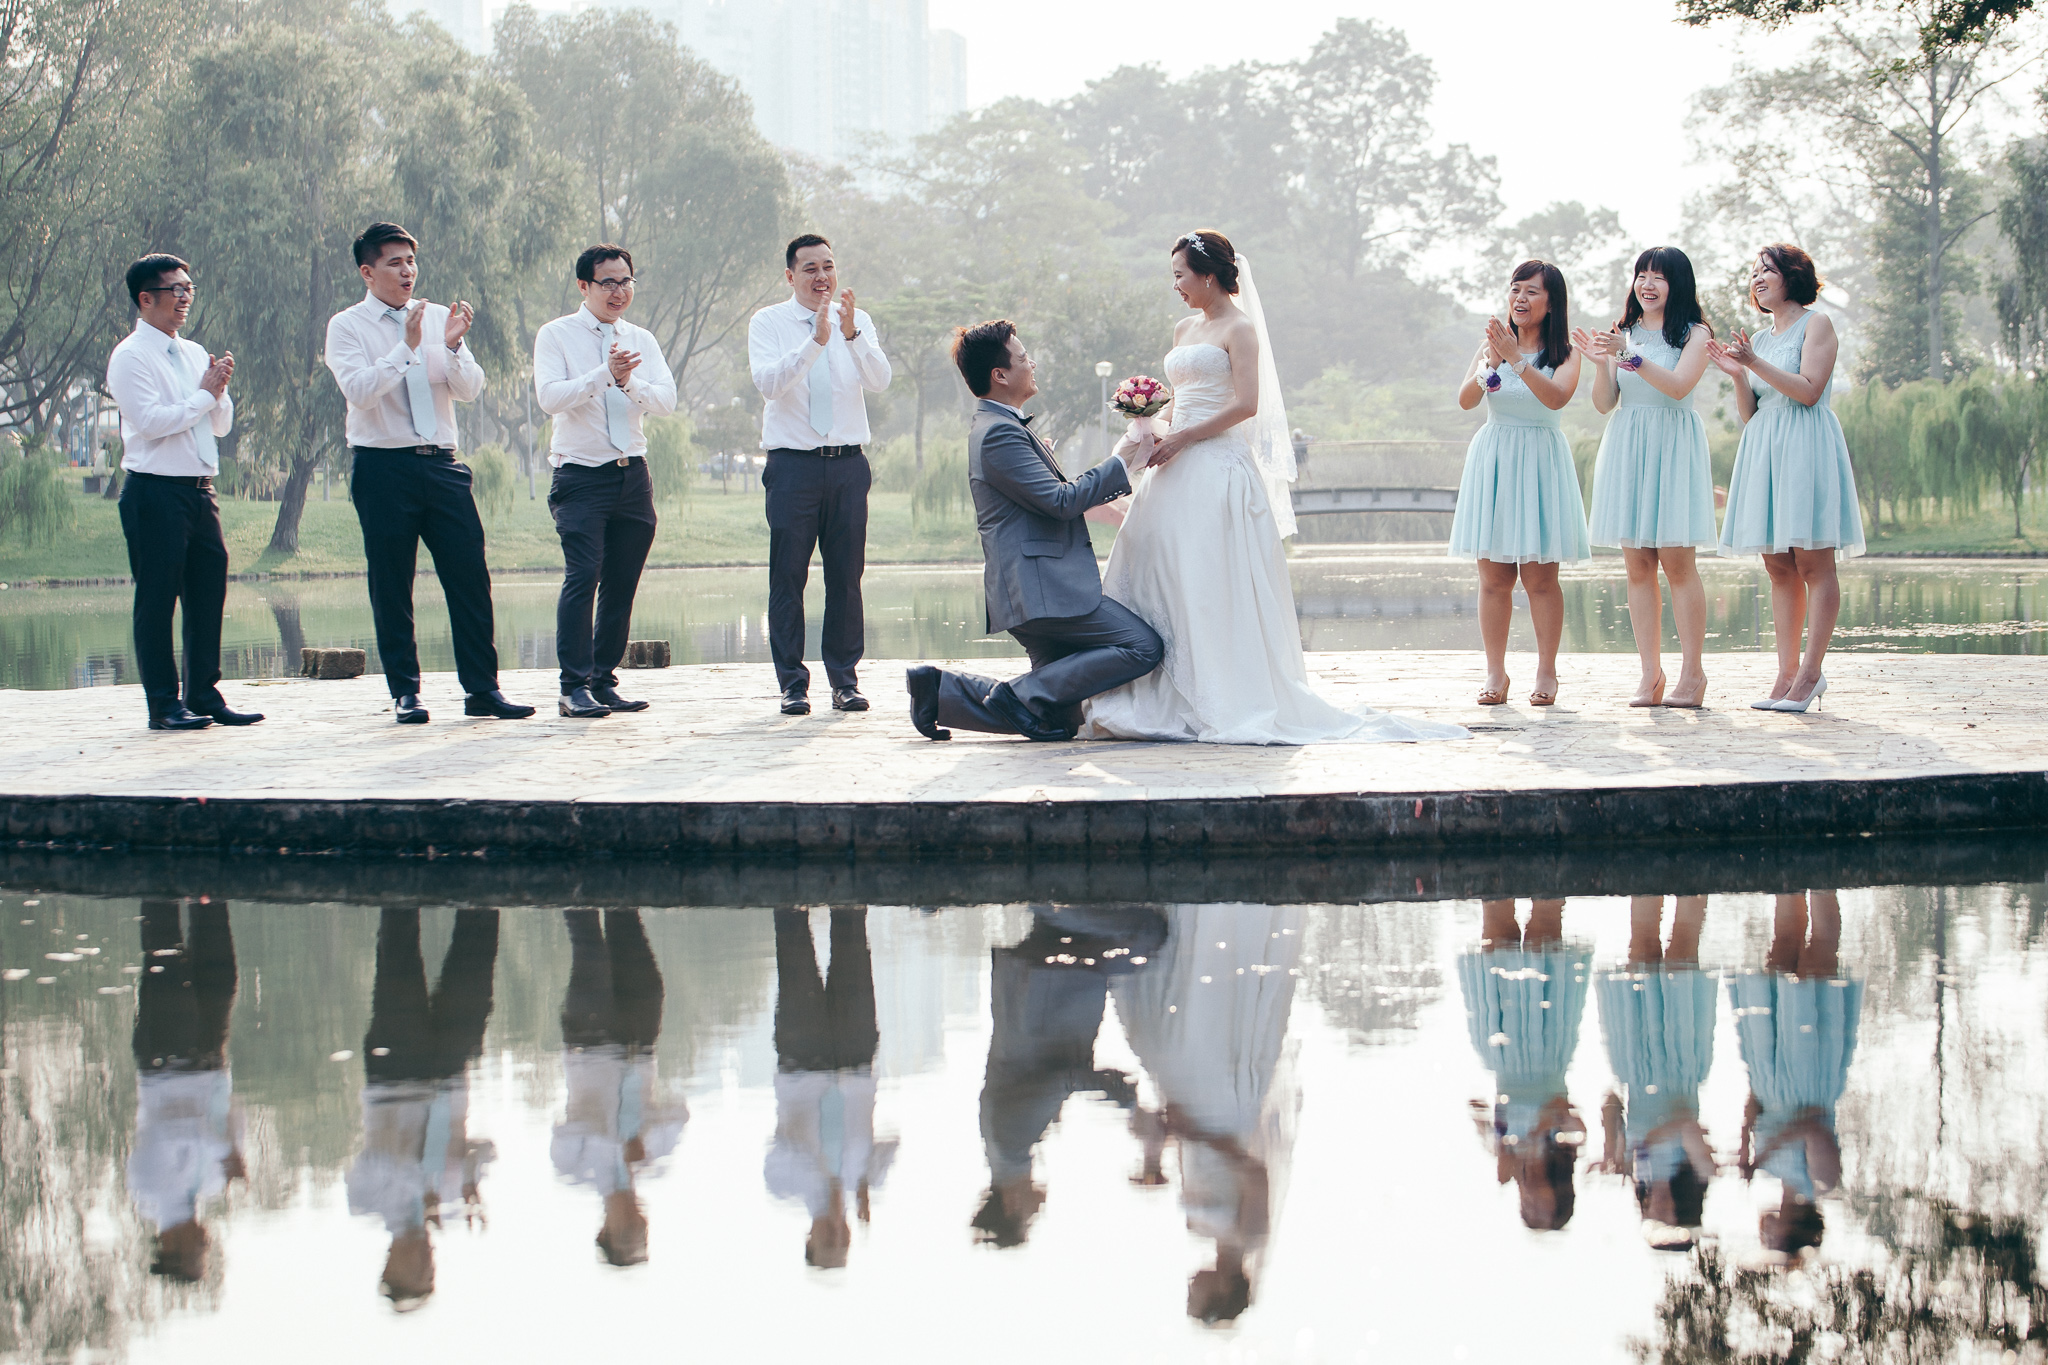 Shiwei & Chee Chin Wedding Day Highlights (resized for sharing) -086.jpg